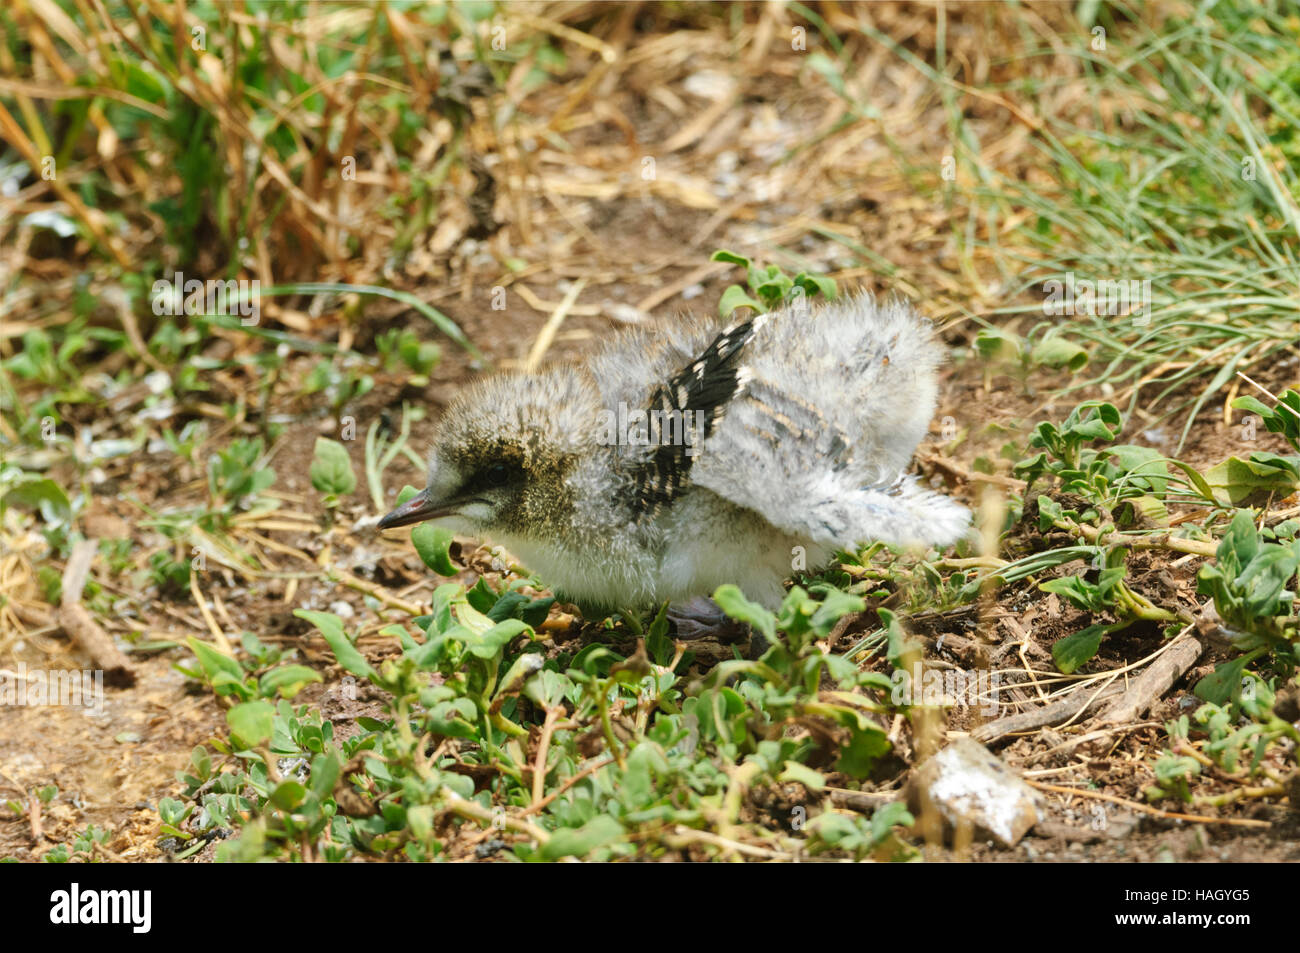 Very young Sooty Tern chick (Sterna fuscata), Lord Howe Island, New South Wales, Australia Stock Photo